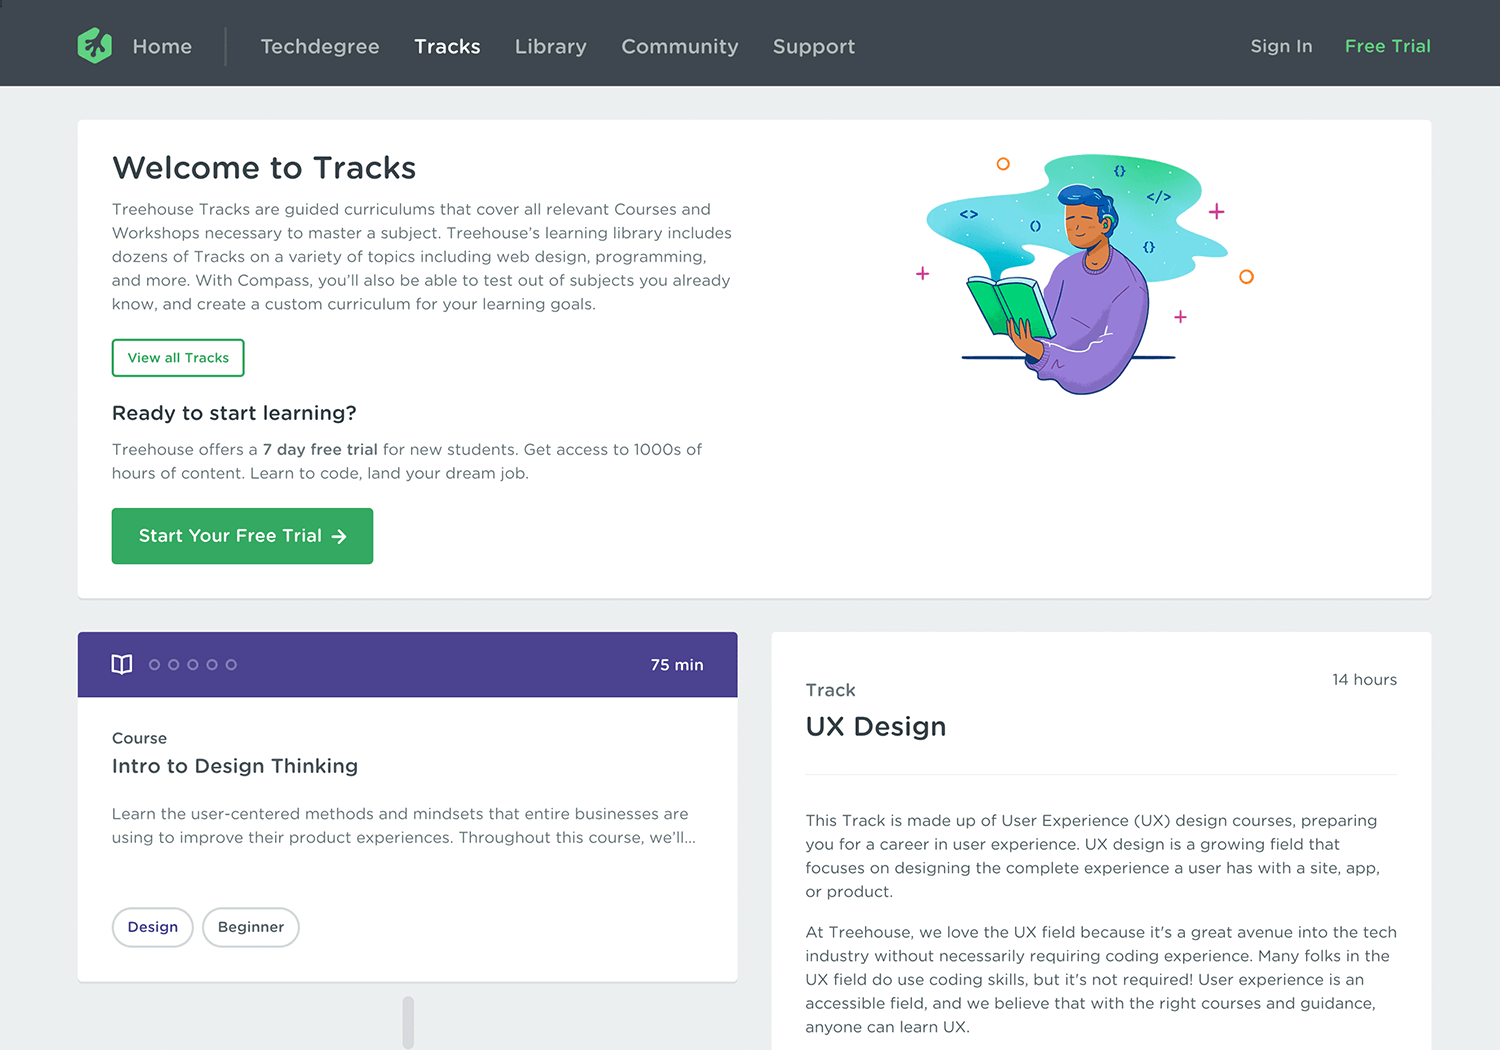 Online UI/UX design course at Treehouse